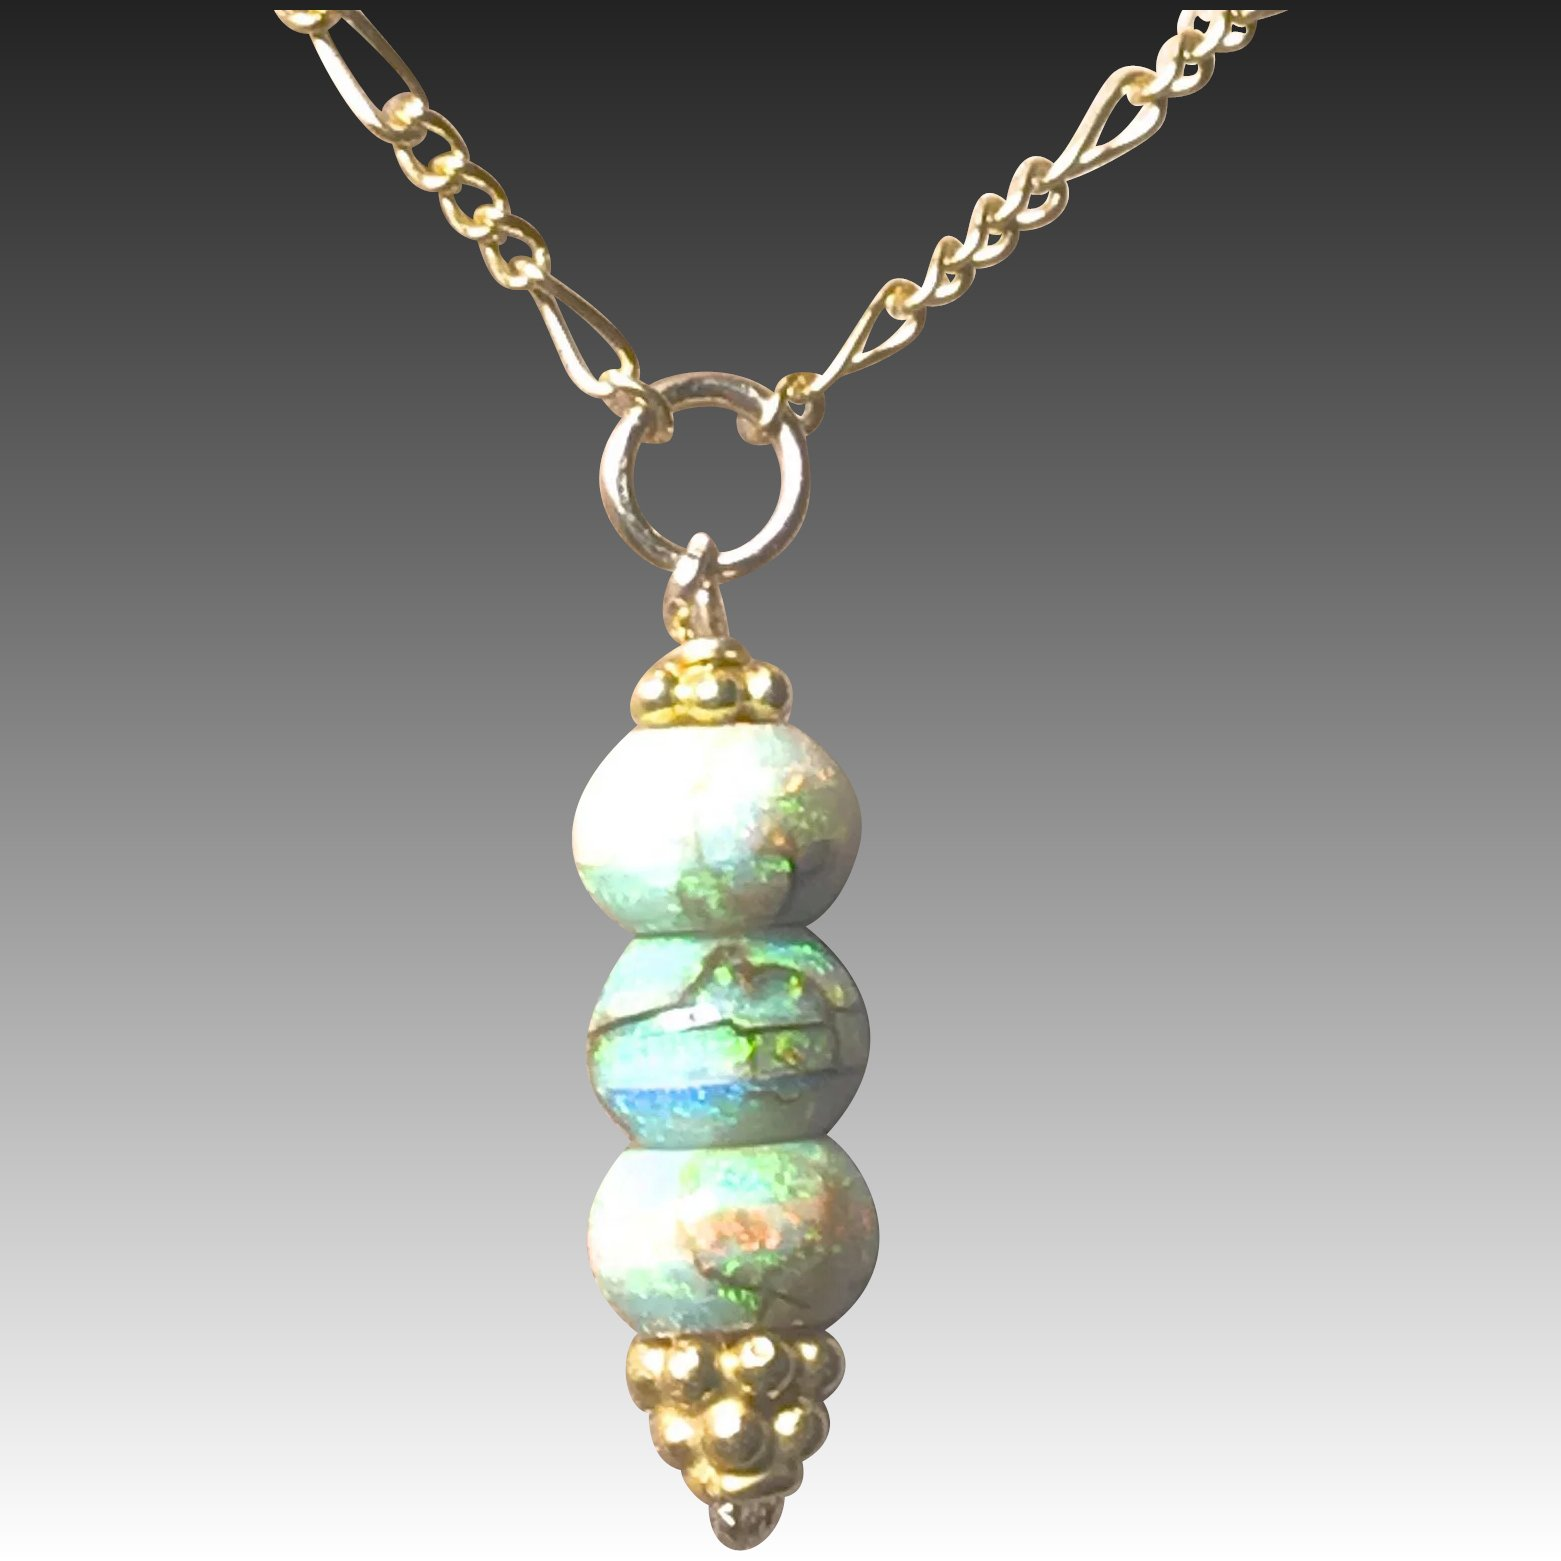 Opal Drop Gold Filled Pendant Necklace Gem Bliss Jewelry